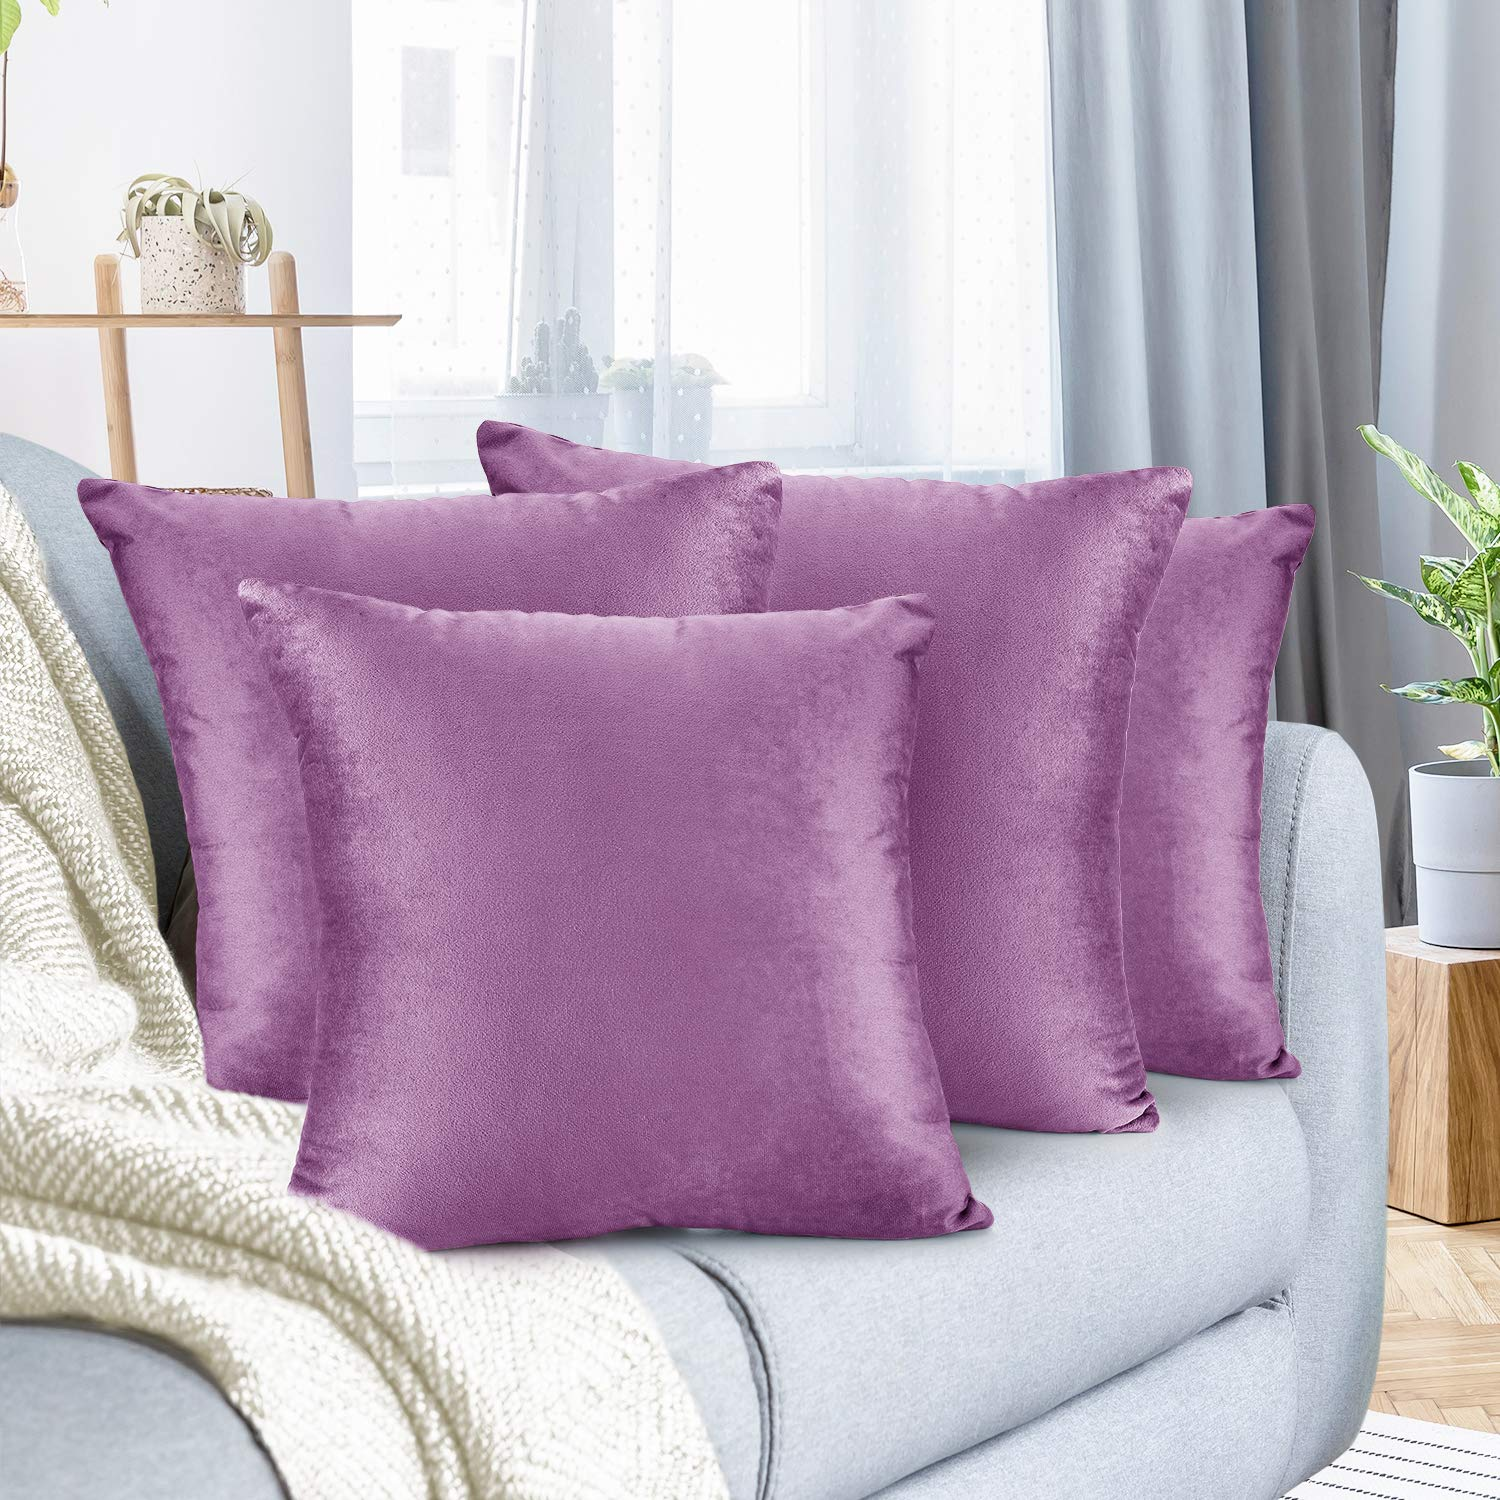 """Nestl Bedding Throw Pillow Cover 22"""" x 22"""" Soft Square Decorative Throw Pillow Covers Cozy Velvet Cushion Case for Sofa Couch Bedroom, Set of 4, Lavender Dream"""